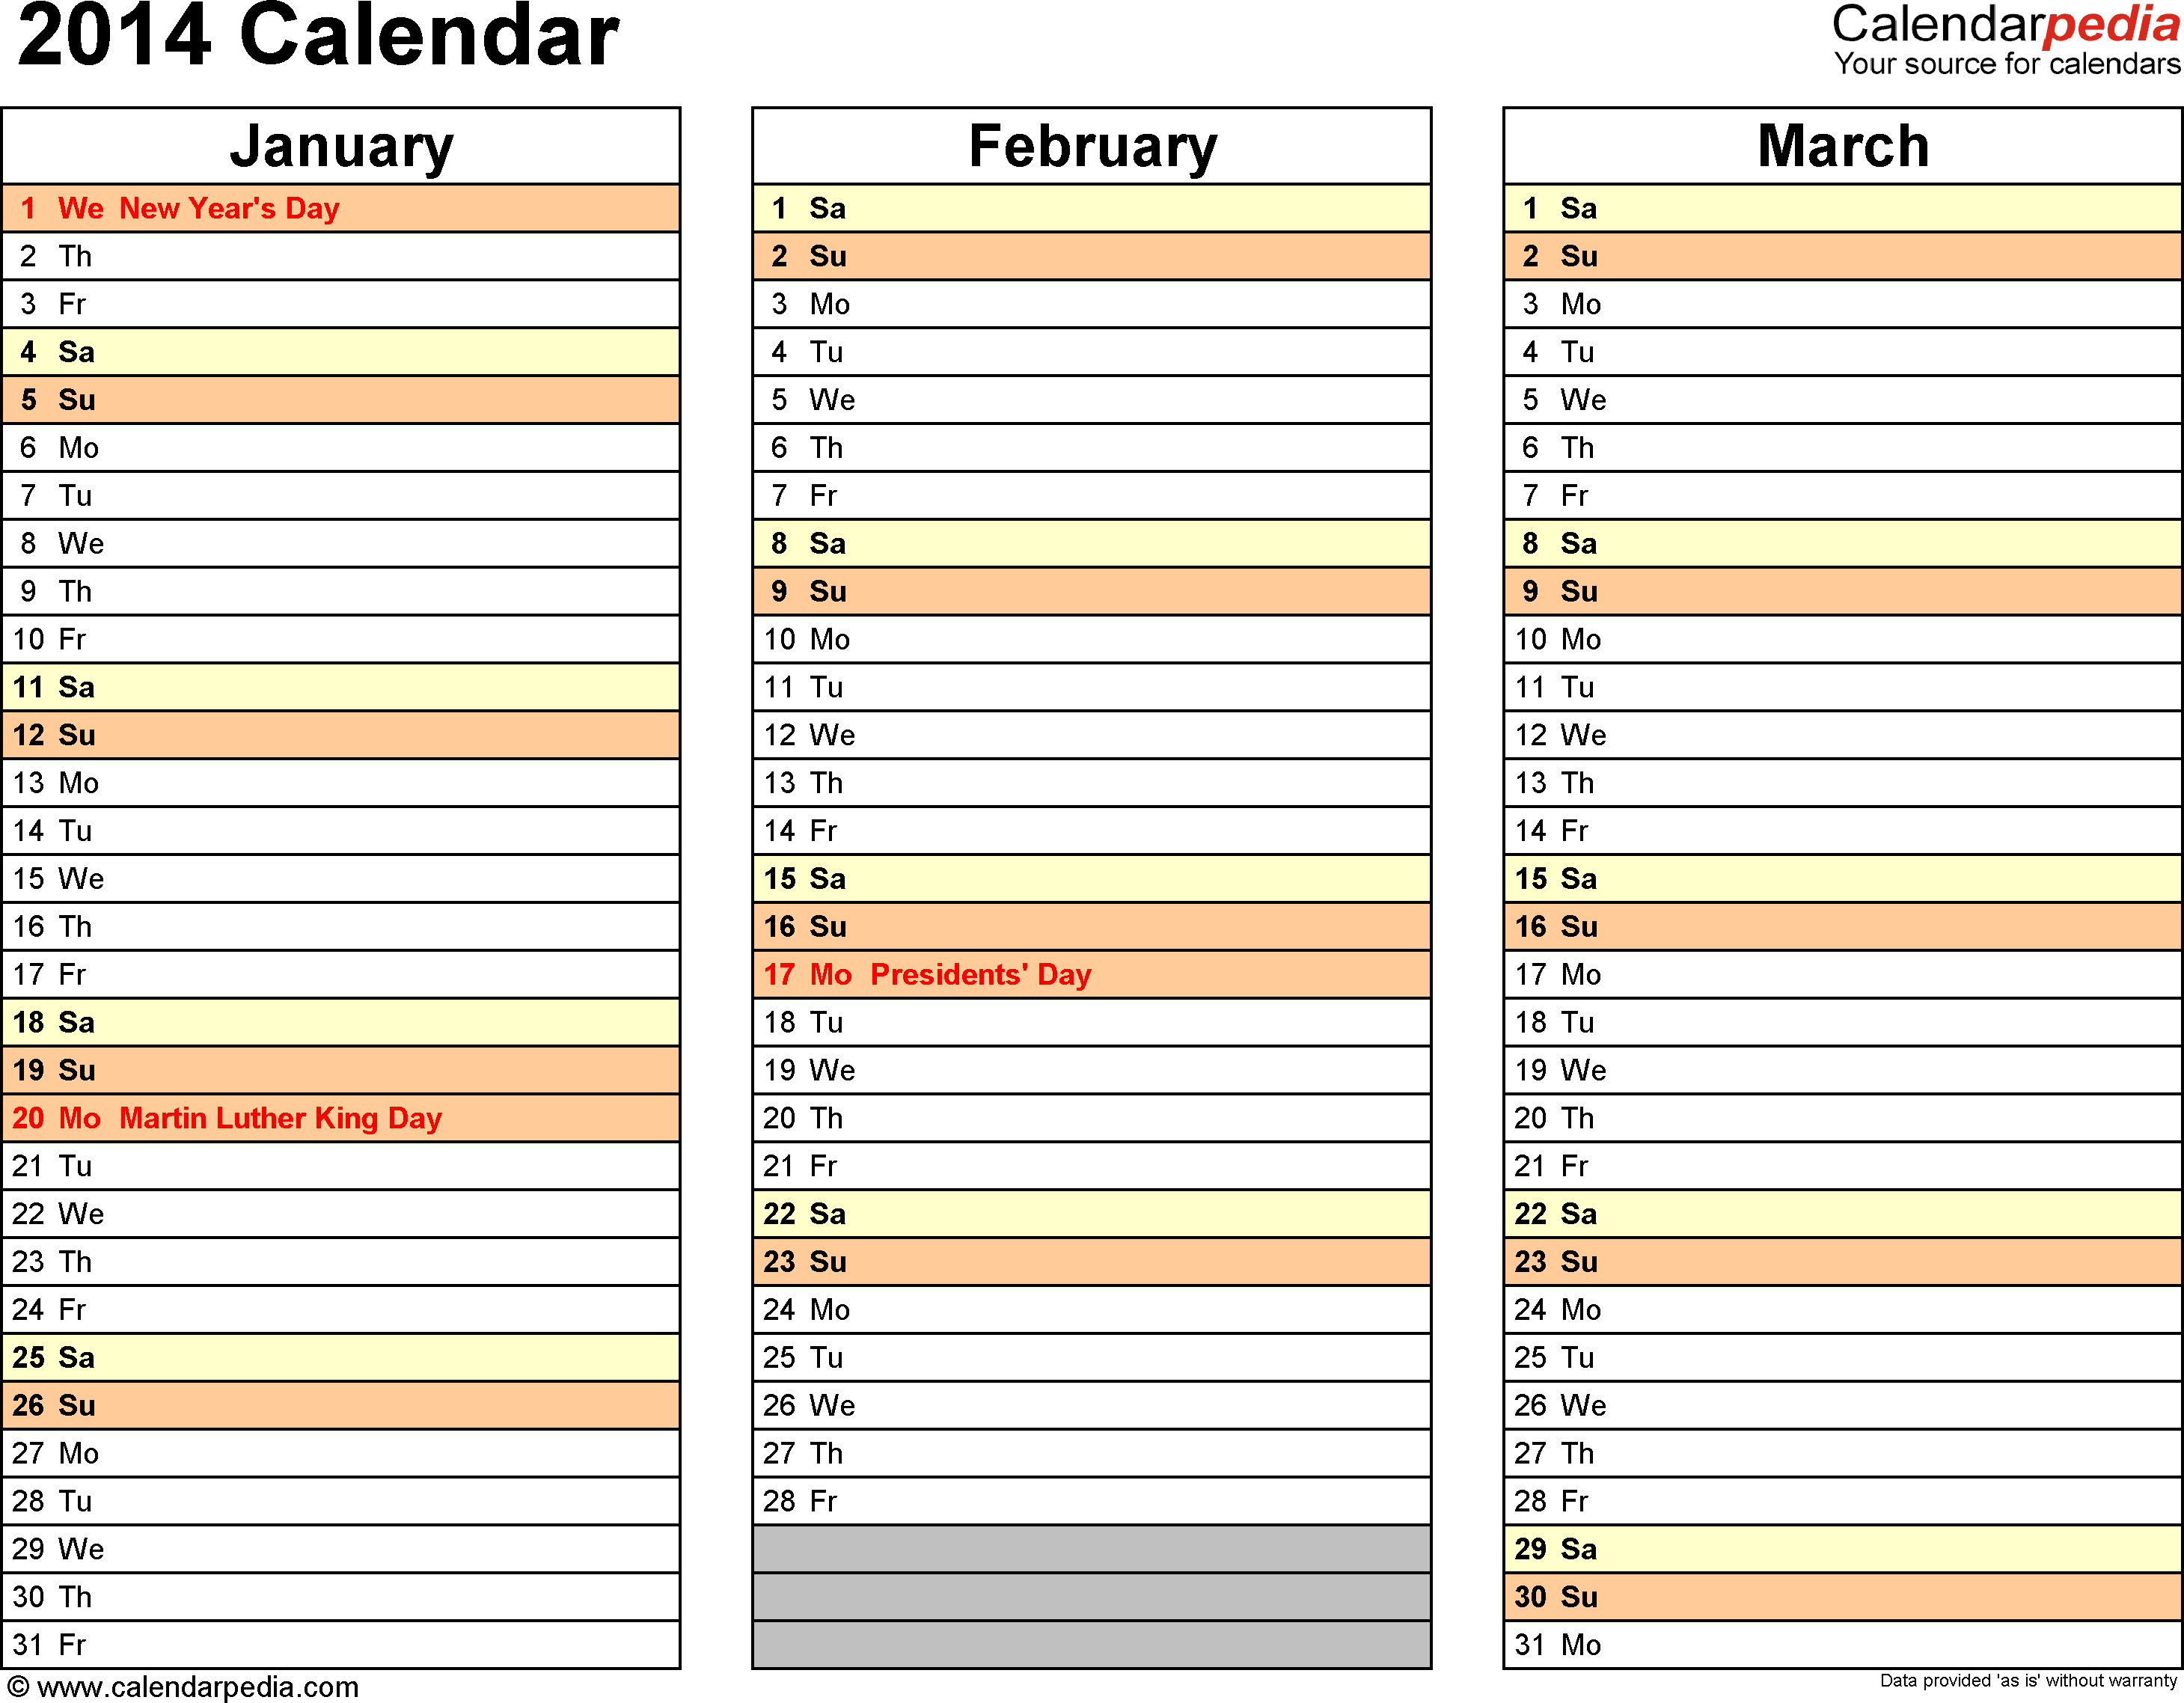 Download Excel template for 2014 calendar template 6: landscape orientation, 4 pages, months horizontally, days vertically, with US federal holidays 2014, paper format: US letter